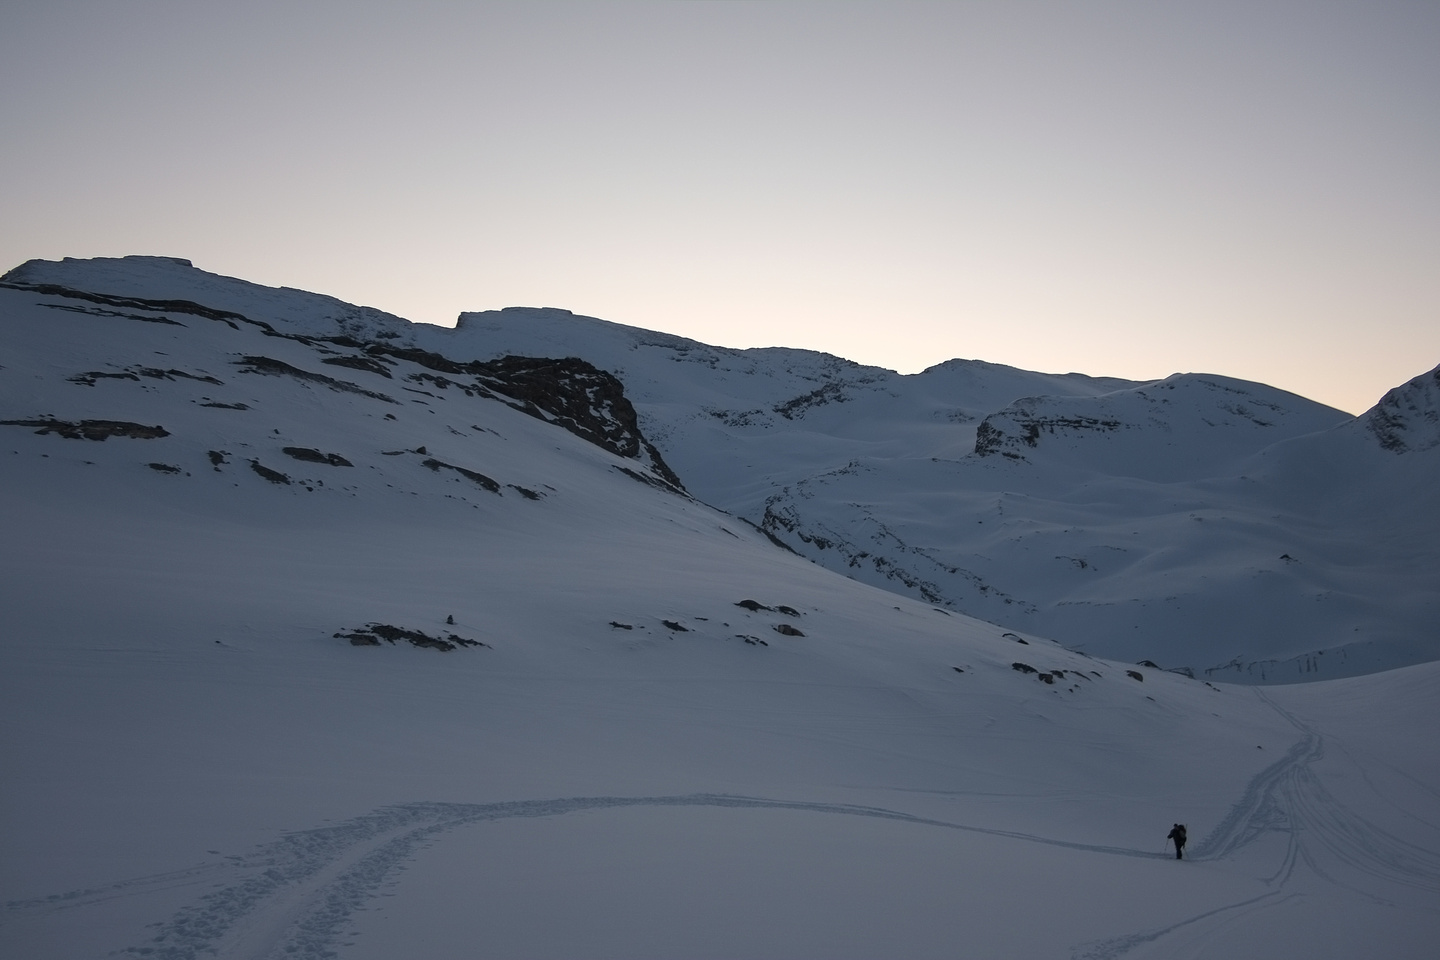 Above the lower headwall, Kev approaching the Bow Hut in evening lighting.